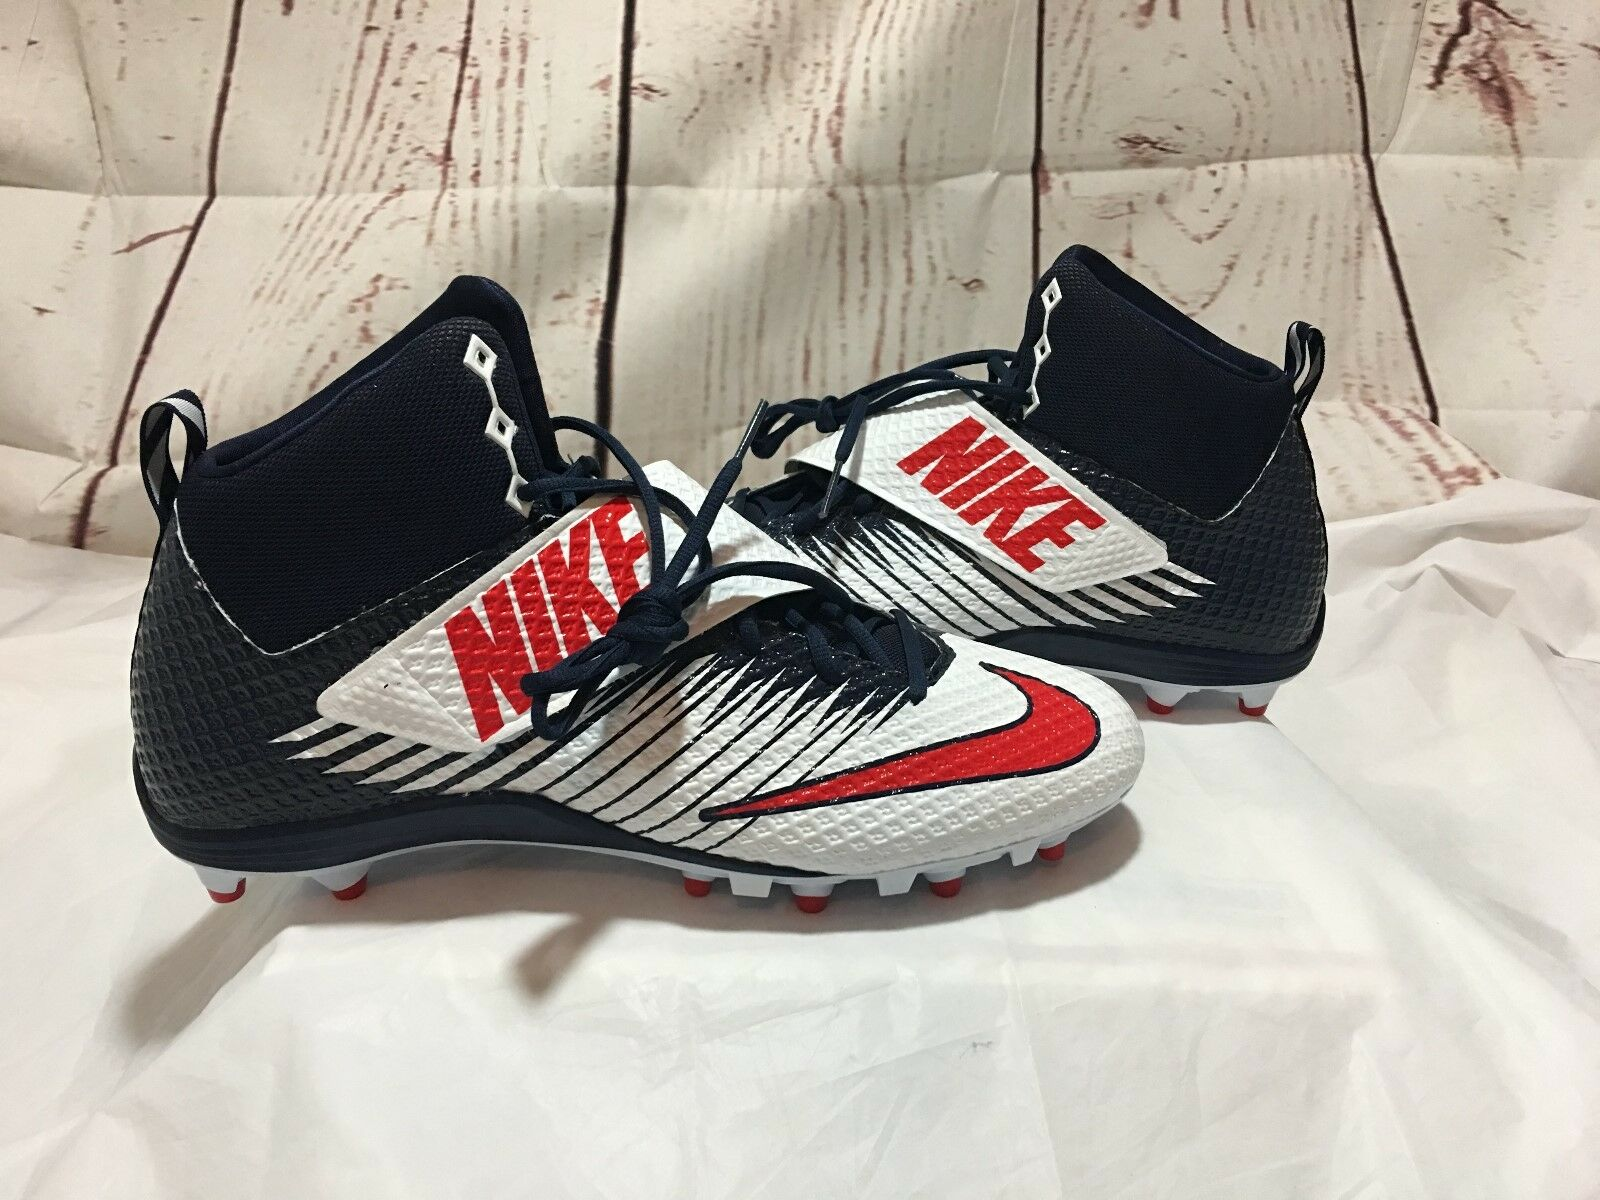 09947bc95 Nike Lunarbeast Strike Pro Pro Pro Navy Blue Red White Mid Top Football  Cleats-Size 16 0c2d35